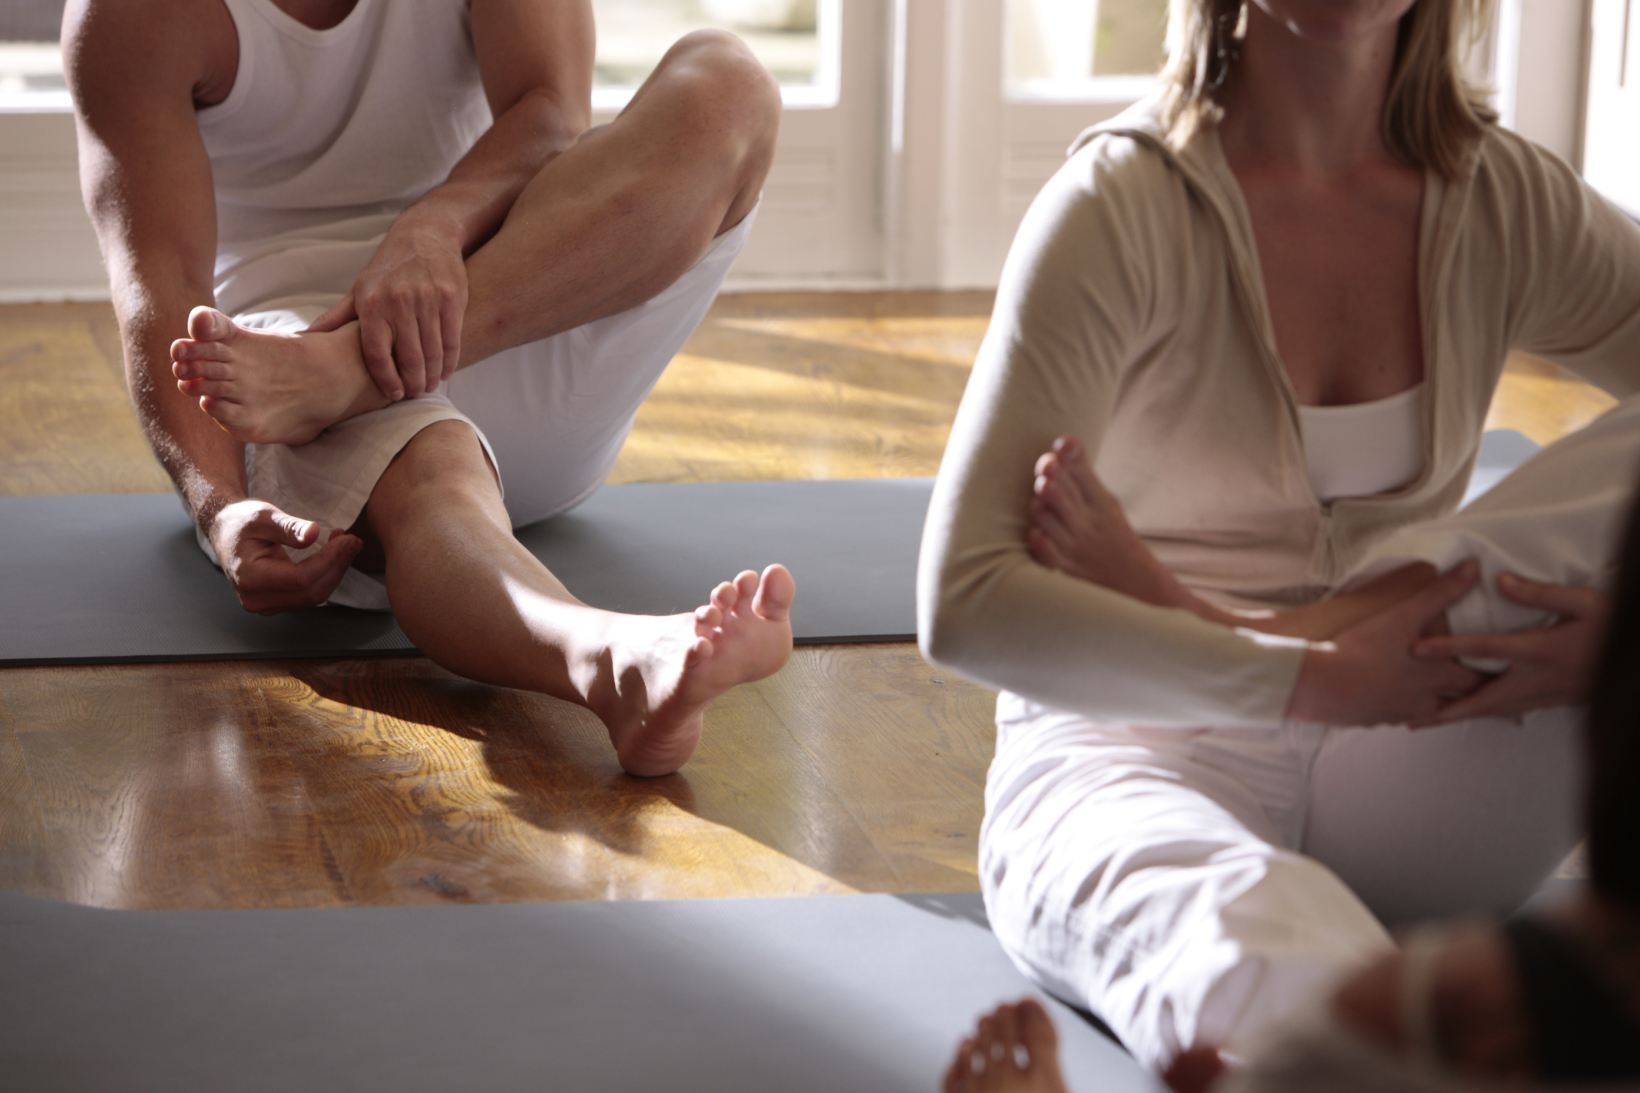 Yoga Intimidating? 4 Reasons You Should Not Feel This Way